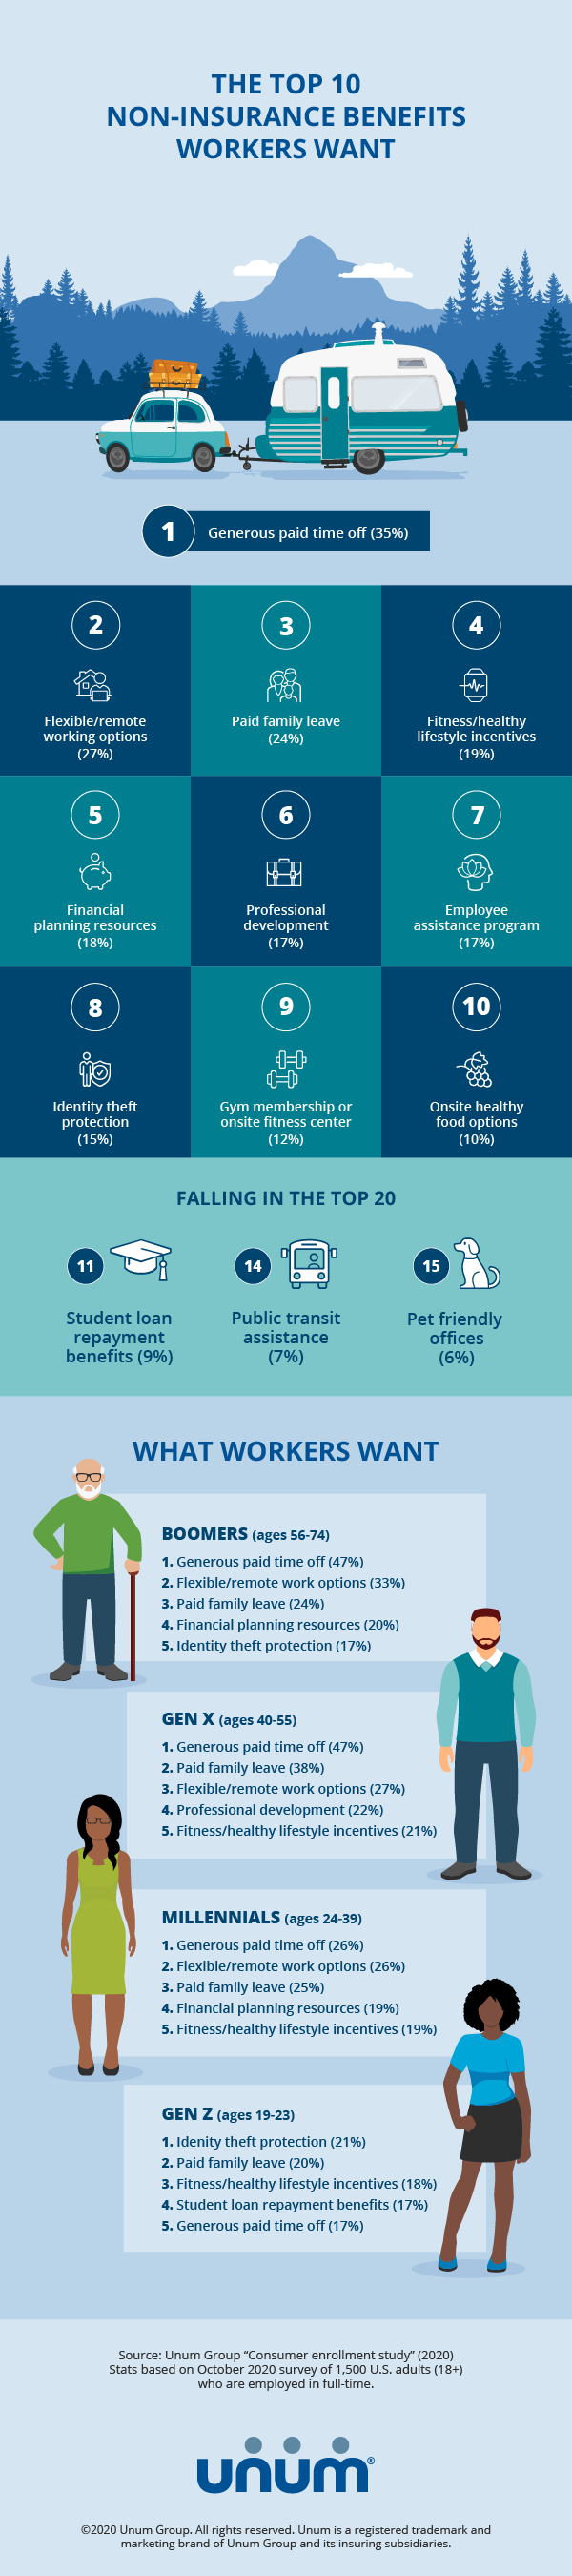 From pet-friendly offices to paid family leave, U.S. workers rank the top non-insurance benefits they want from their employers.